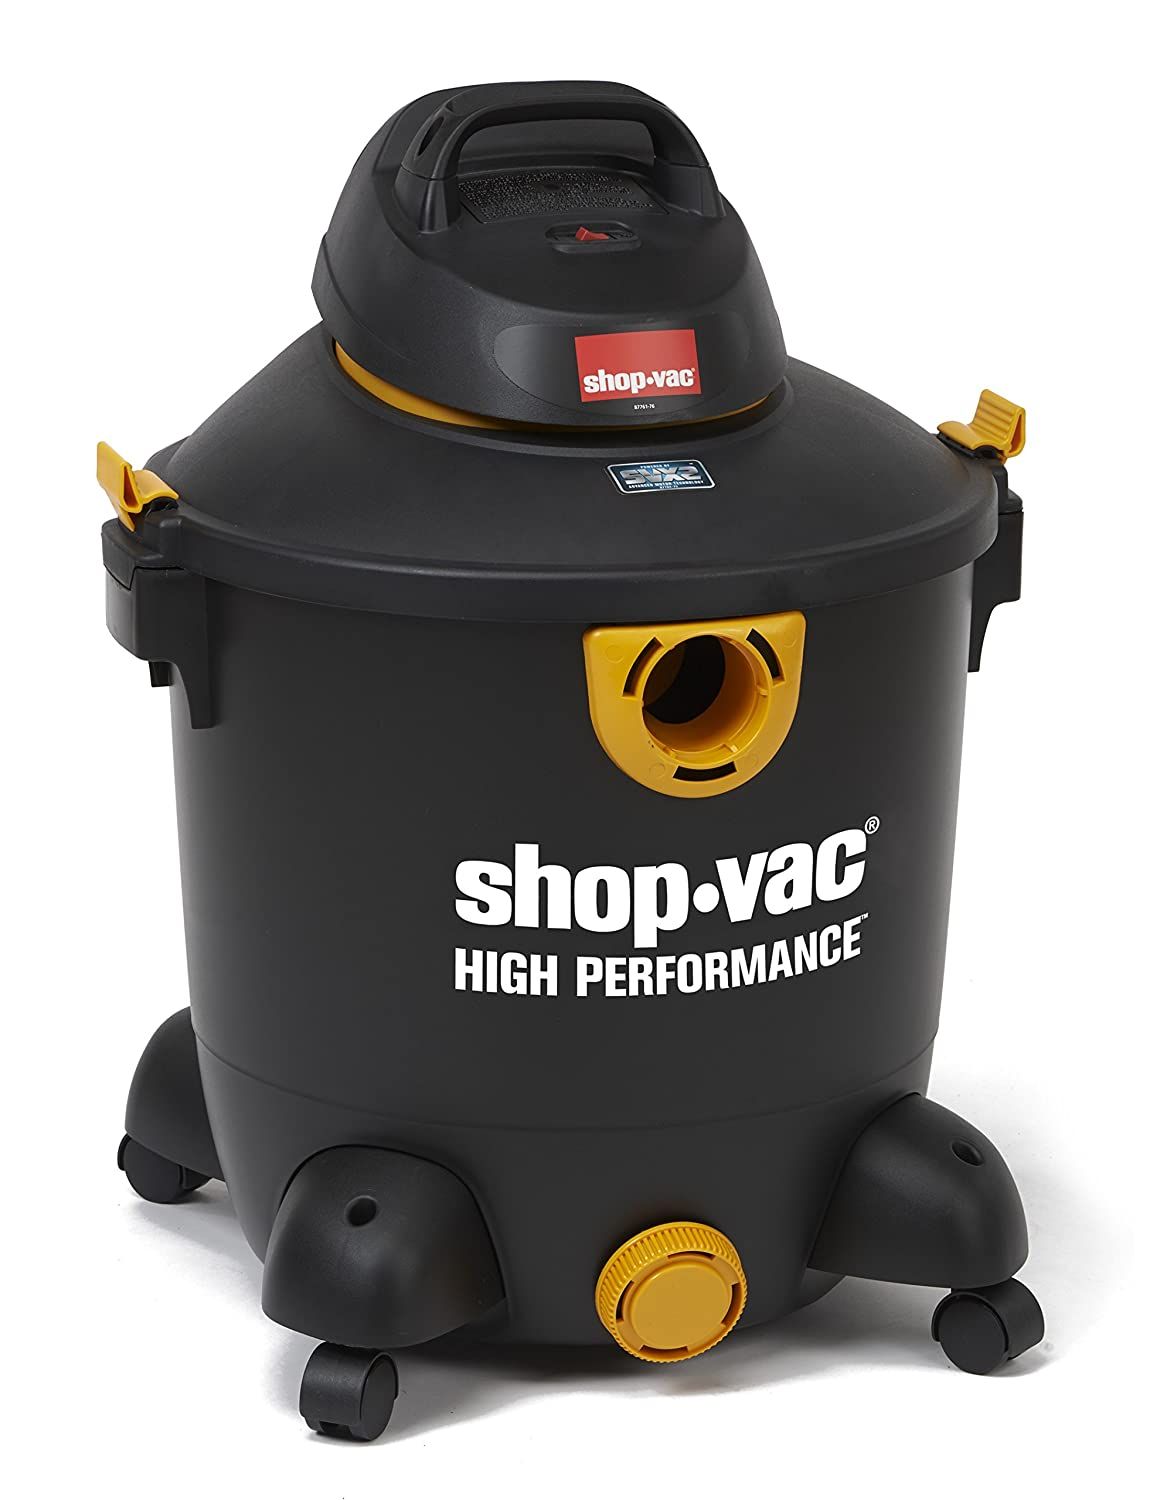 Shop-Vac 5987300 12 gallon 5.5 Peak HP SVX2 High Performance Series Wet Dry Vacuum Black Yellow